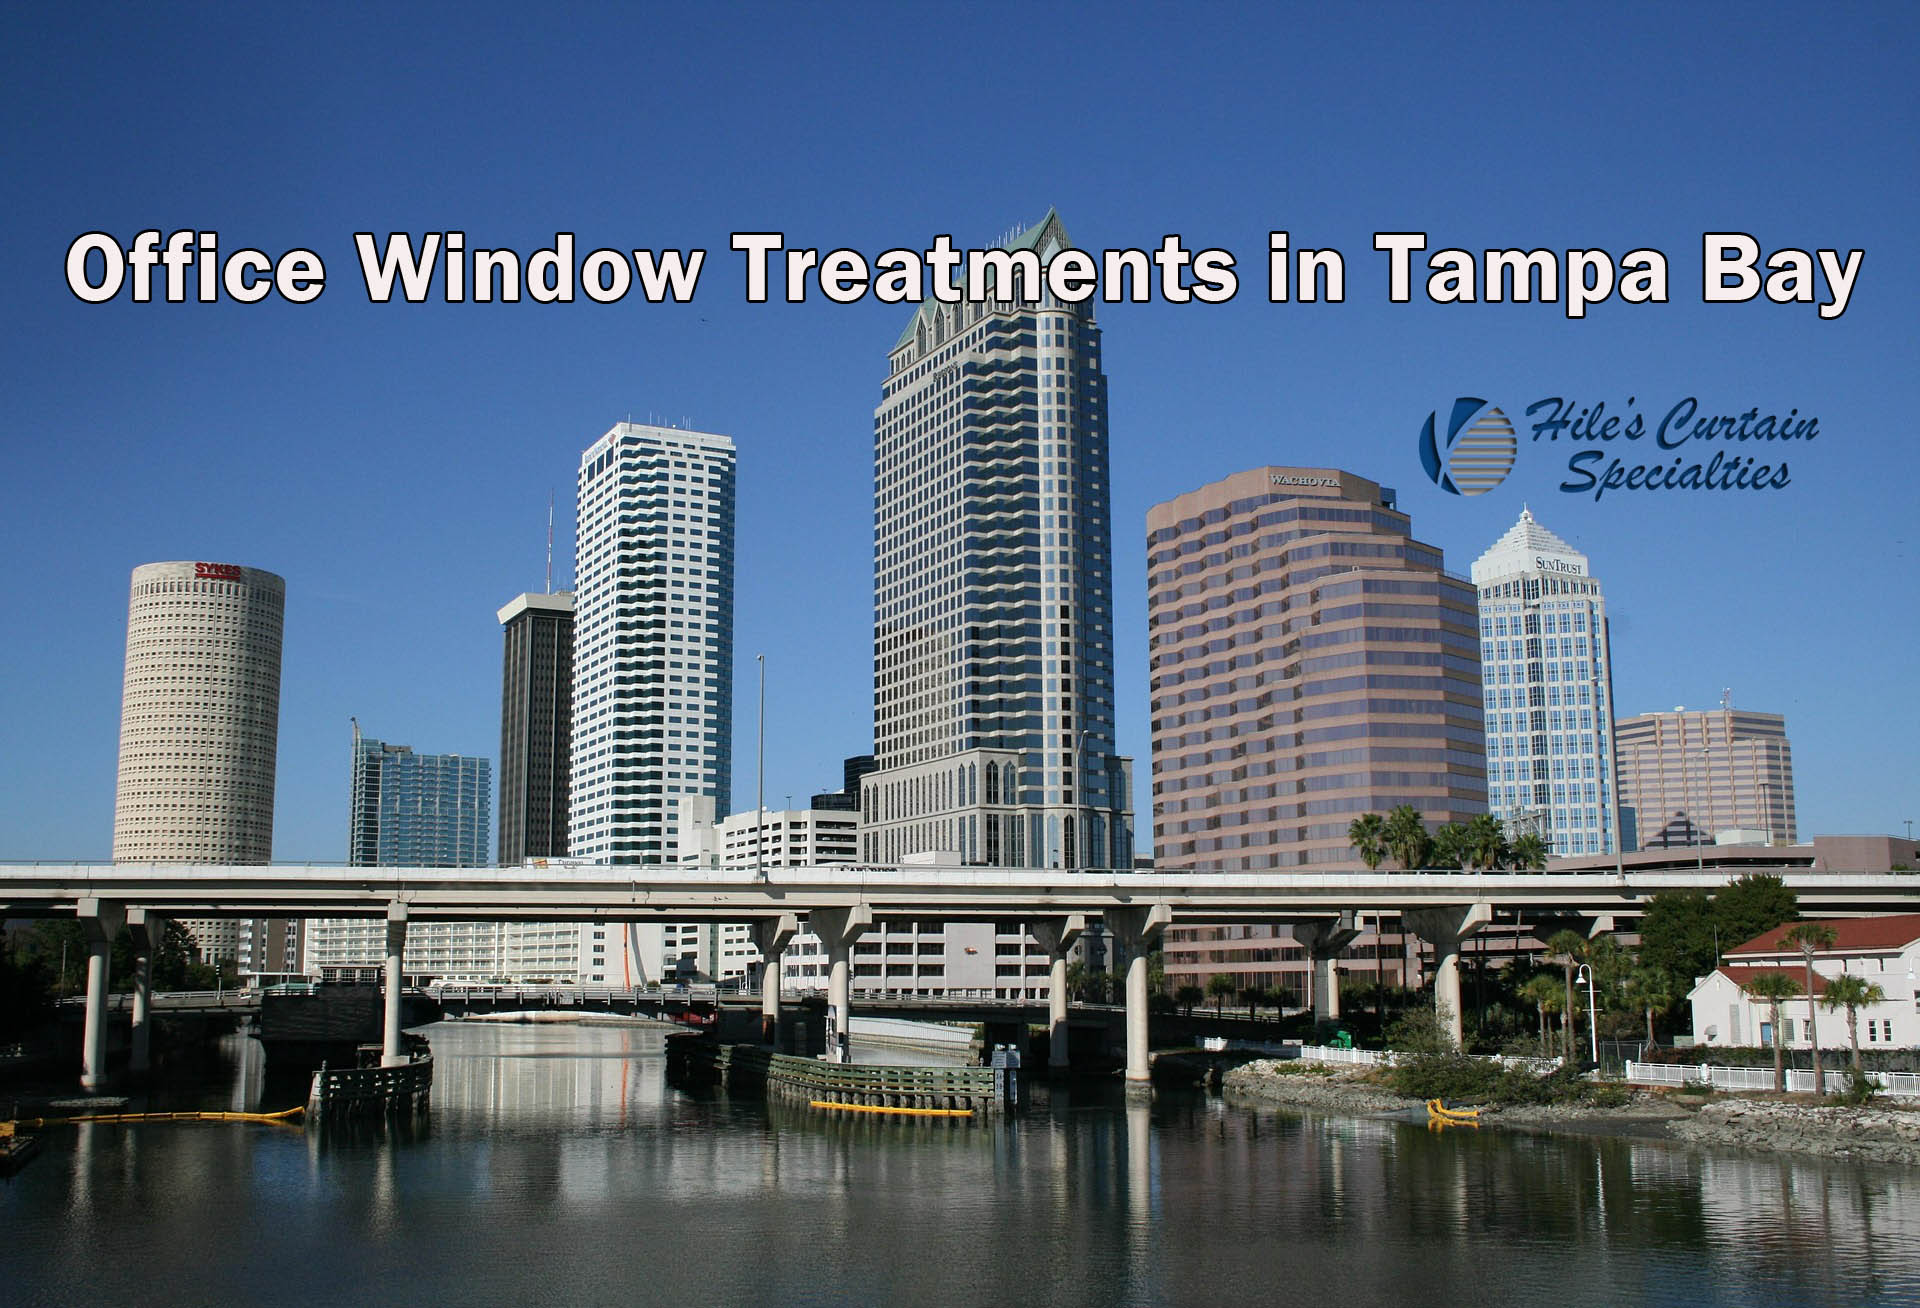 Office Window Treatment in Tampa Bay - Hile's Curtain Specialties